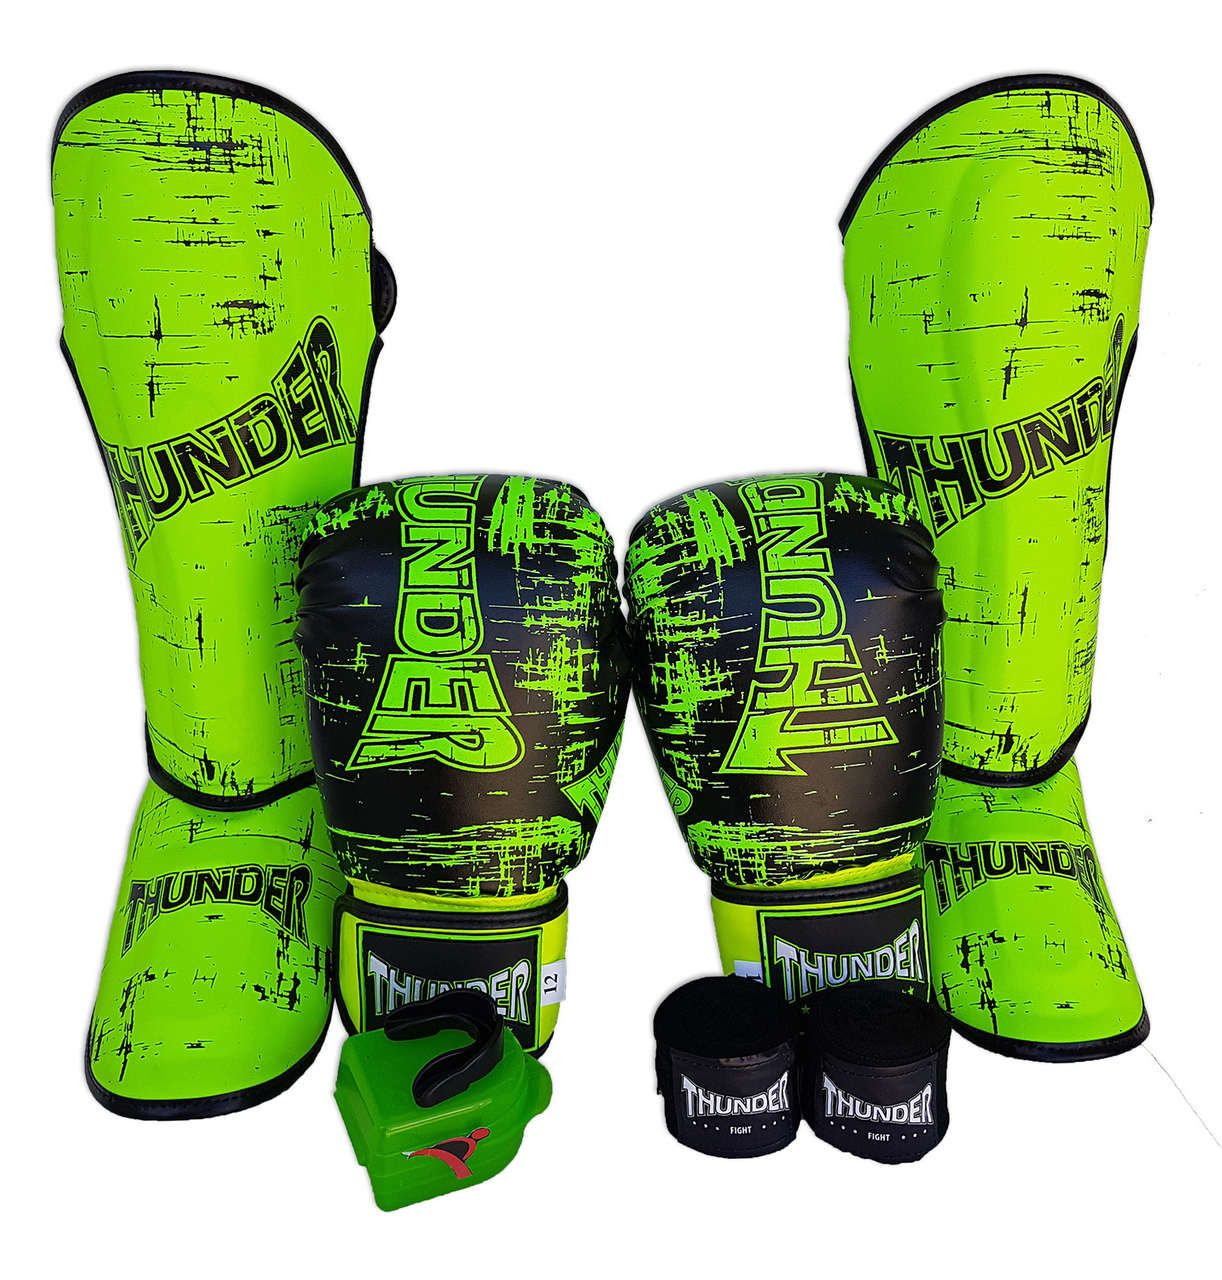 Super Kit de Muay Thai / Kickboxing 12oz - Caneleira G - Preto Riscado Verde - Thunder Fight  - PRALUTA SHOP